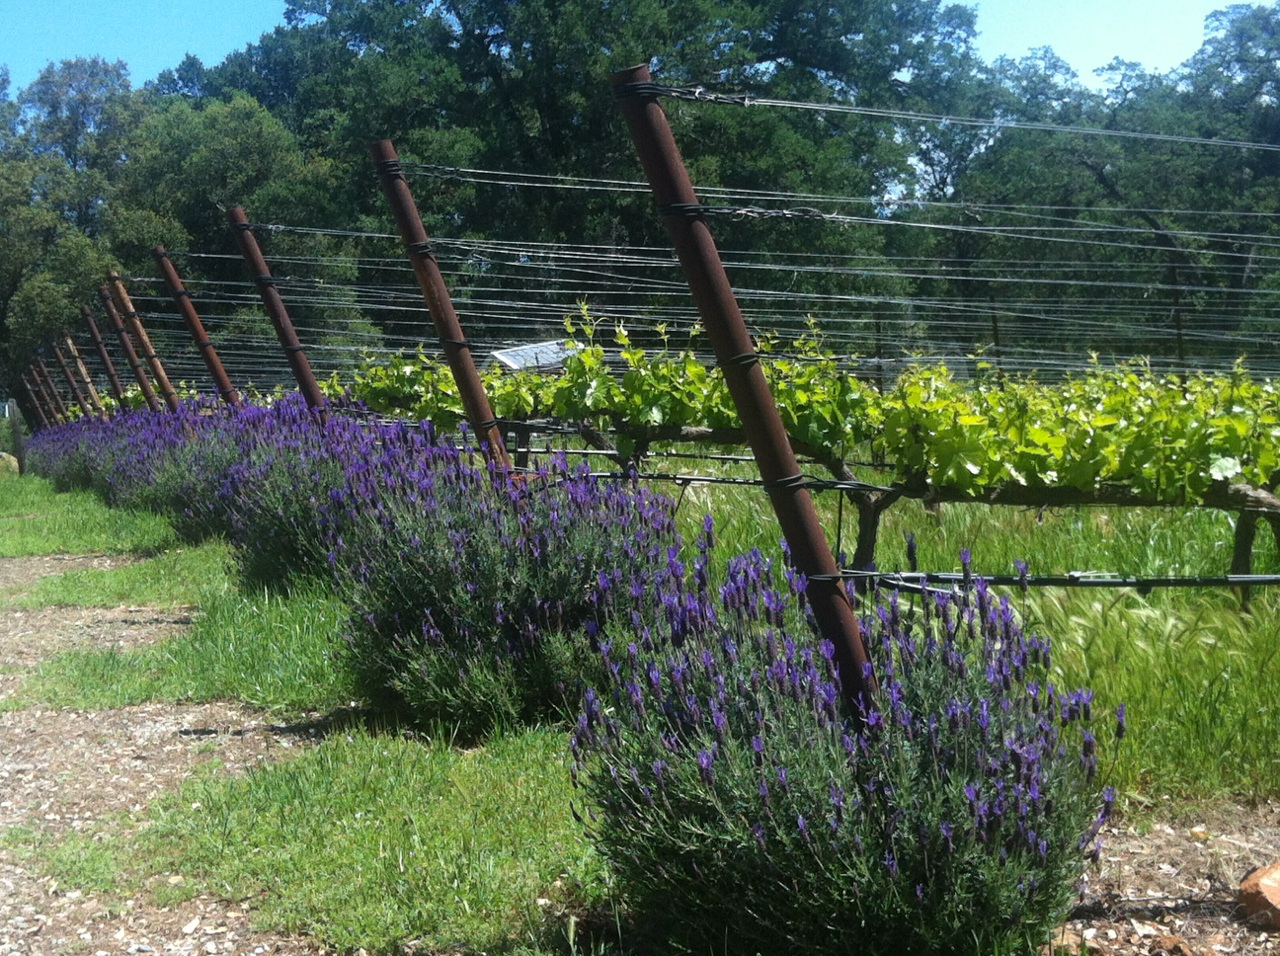 Clondaire Vineyards  - We love adding lavender to the end of each row. Its a great way to bring the pollinators into the vineyards.